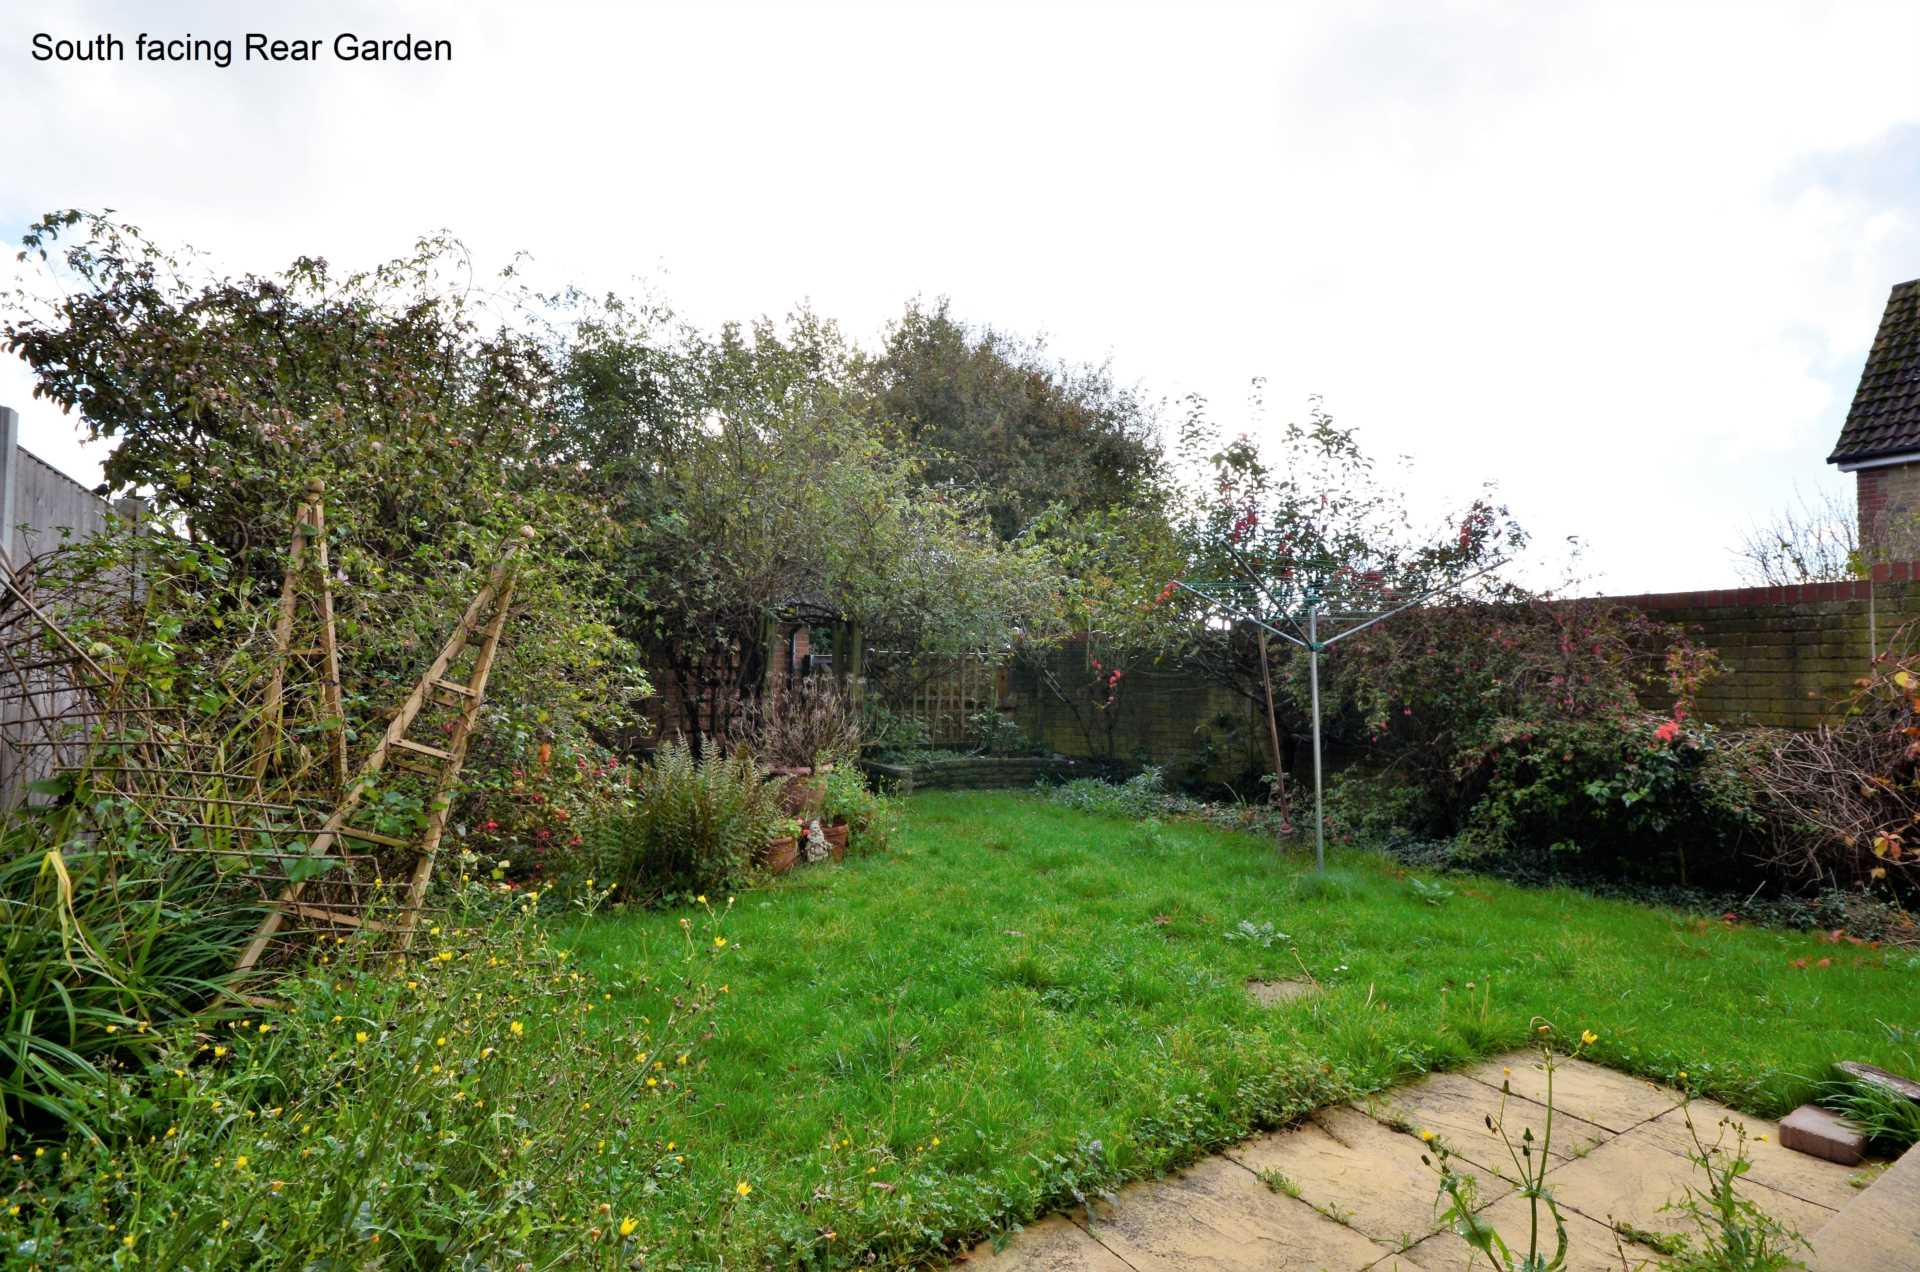 Quilters Drive, Billericay, Image 12